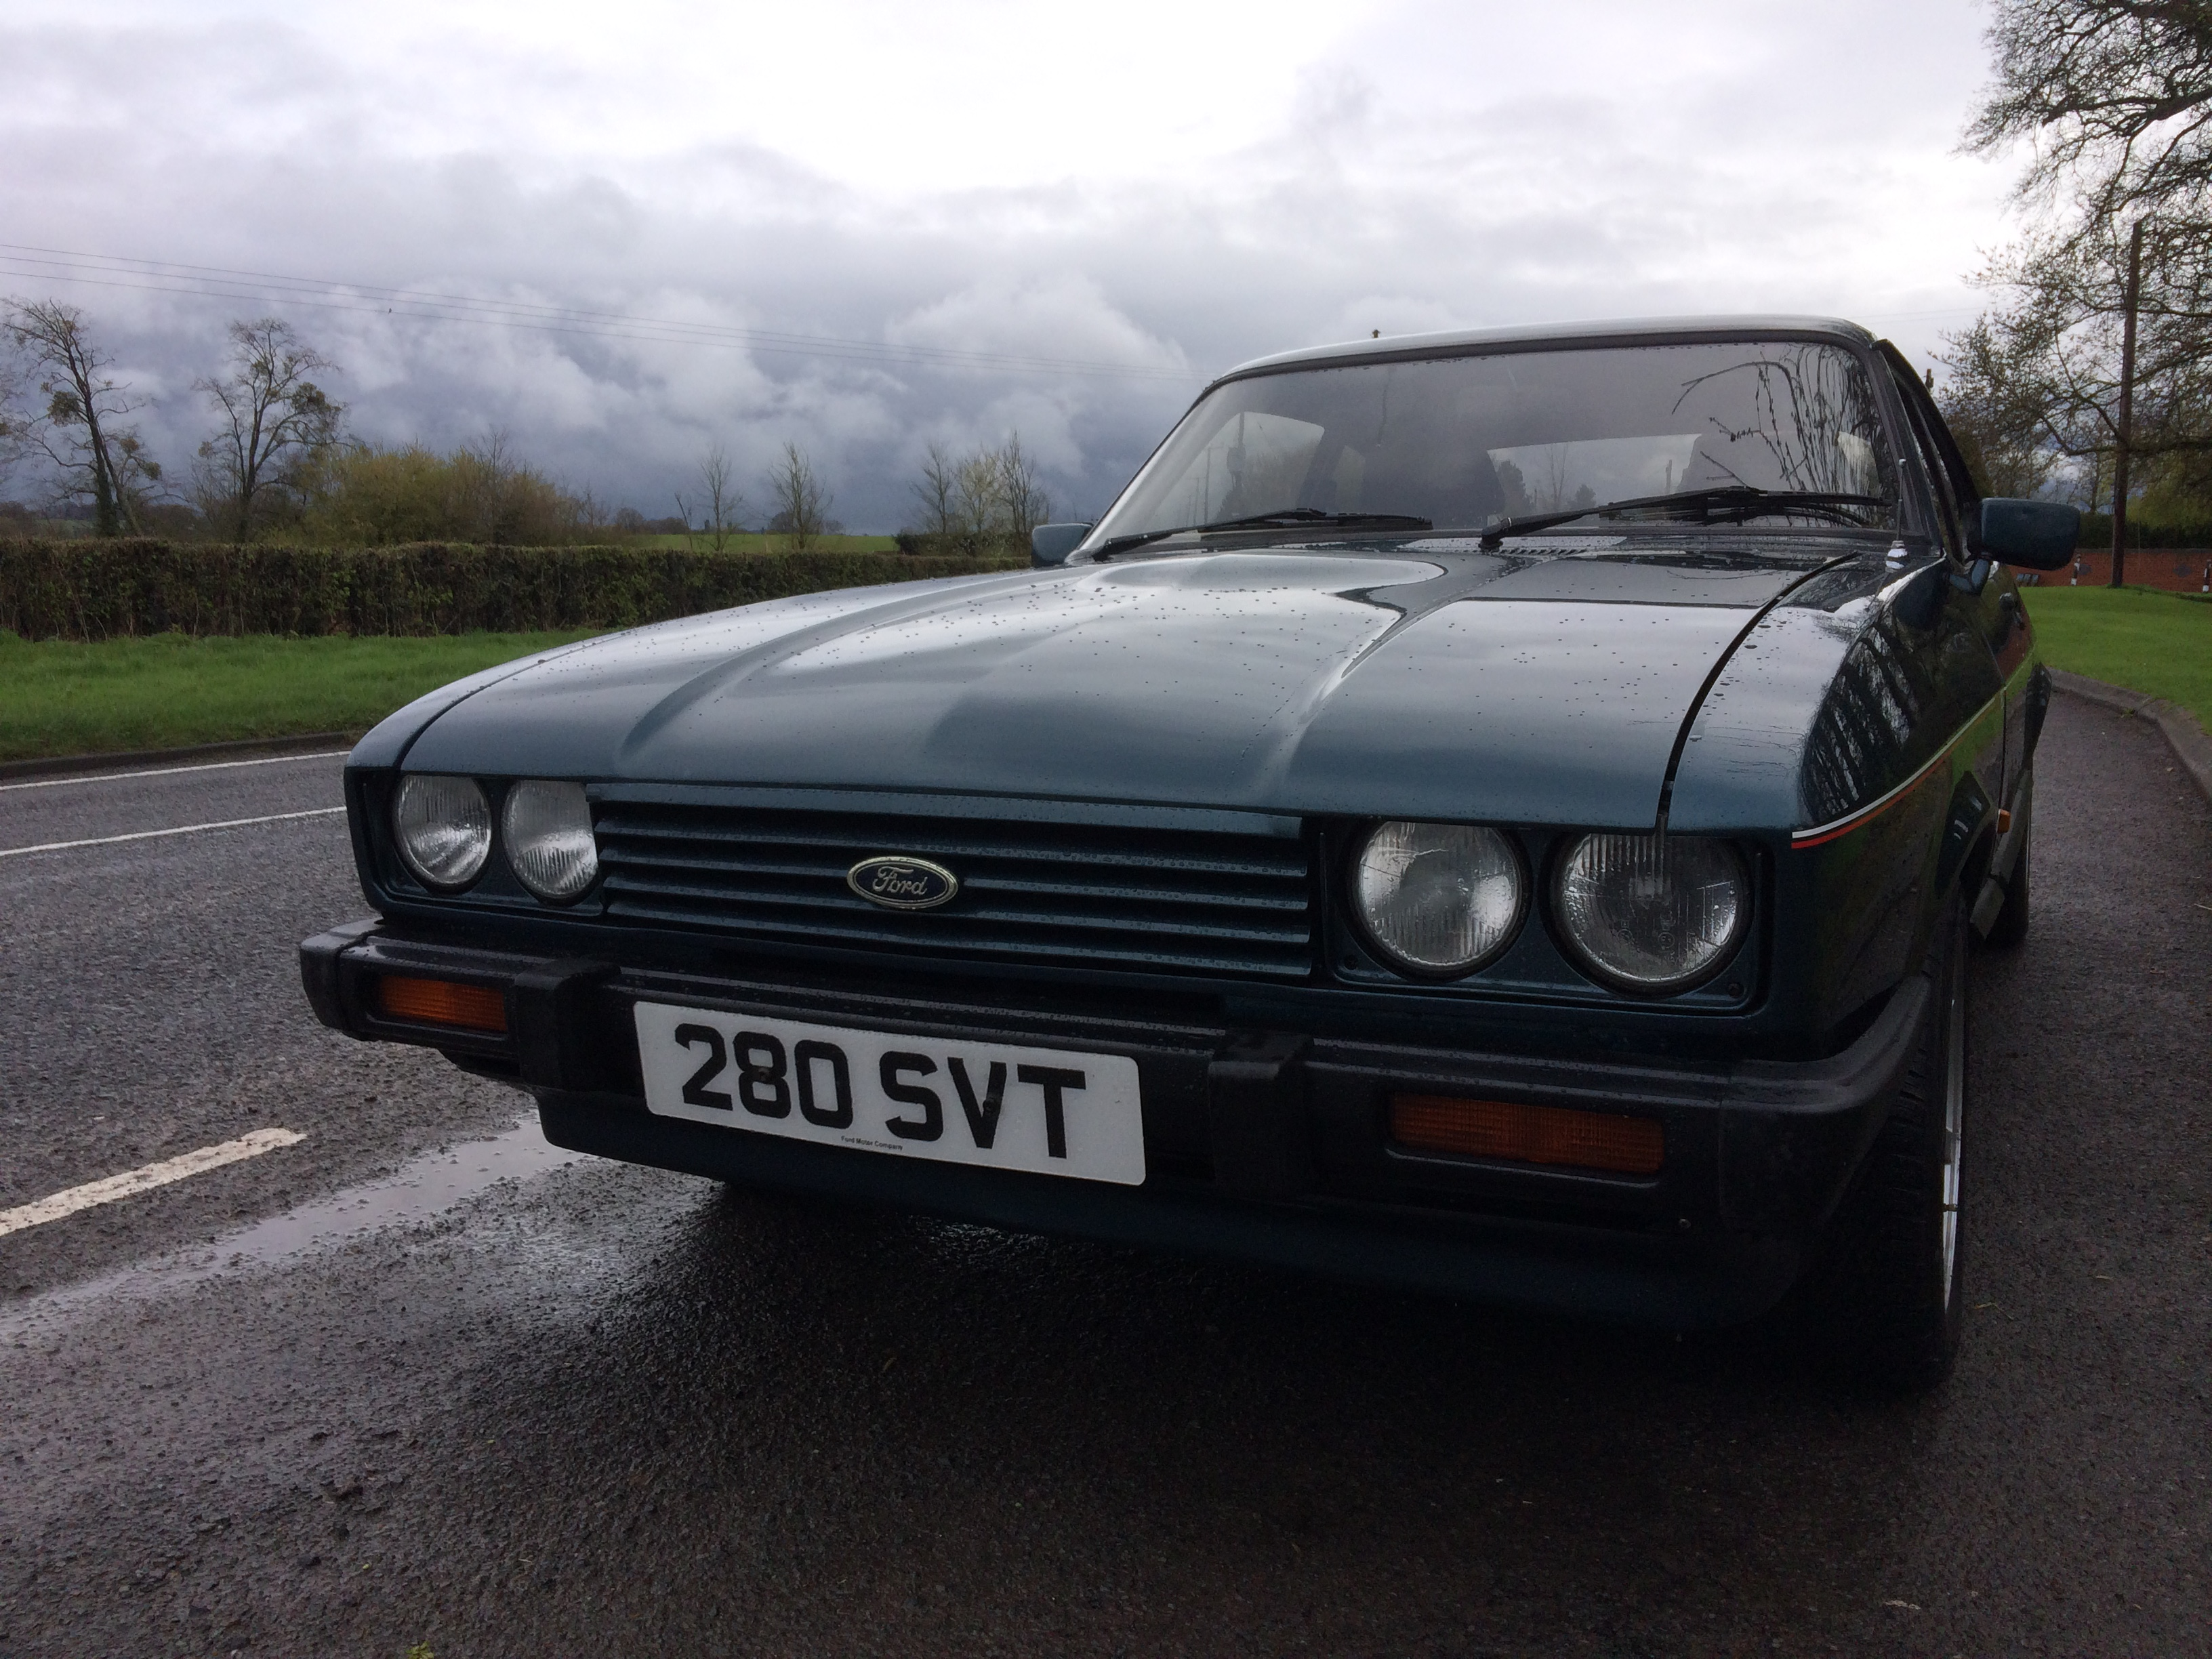 Ford Capri 280 'Brooklands' is so much better than its parts